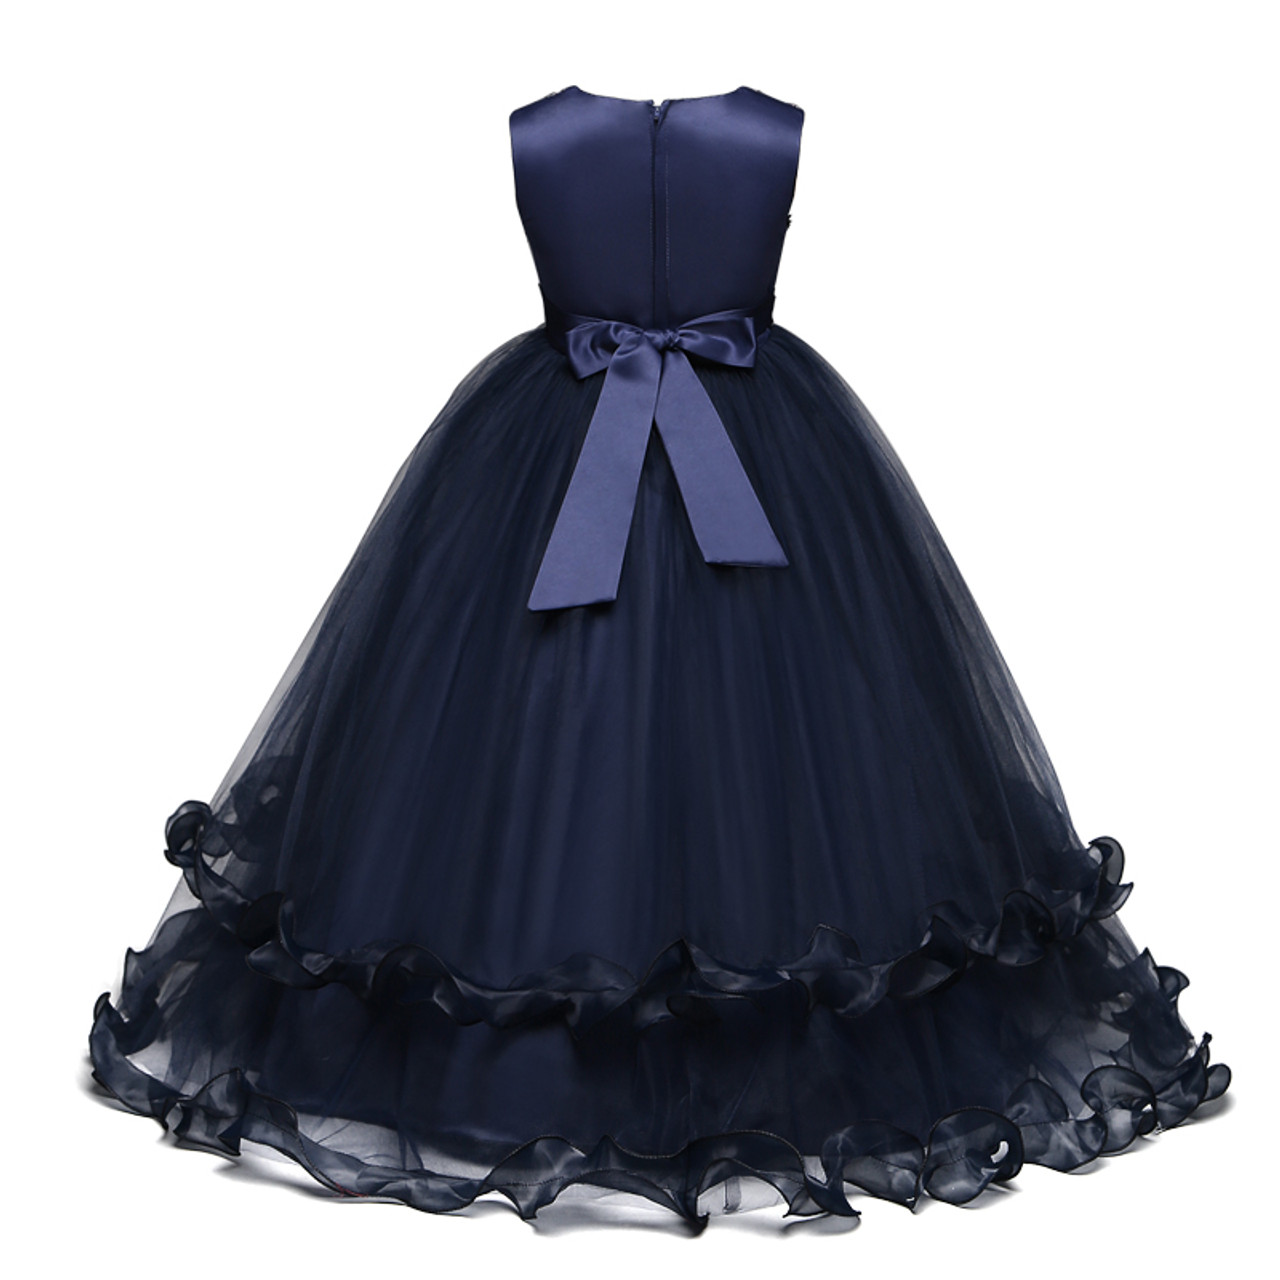 304bfd3e7e Flower Girl Dress Children Graduation Gowns Ceremony Long Dresses Junior  Summer Party Clothing Kids Birthday Wedding Frock 6-14T